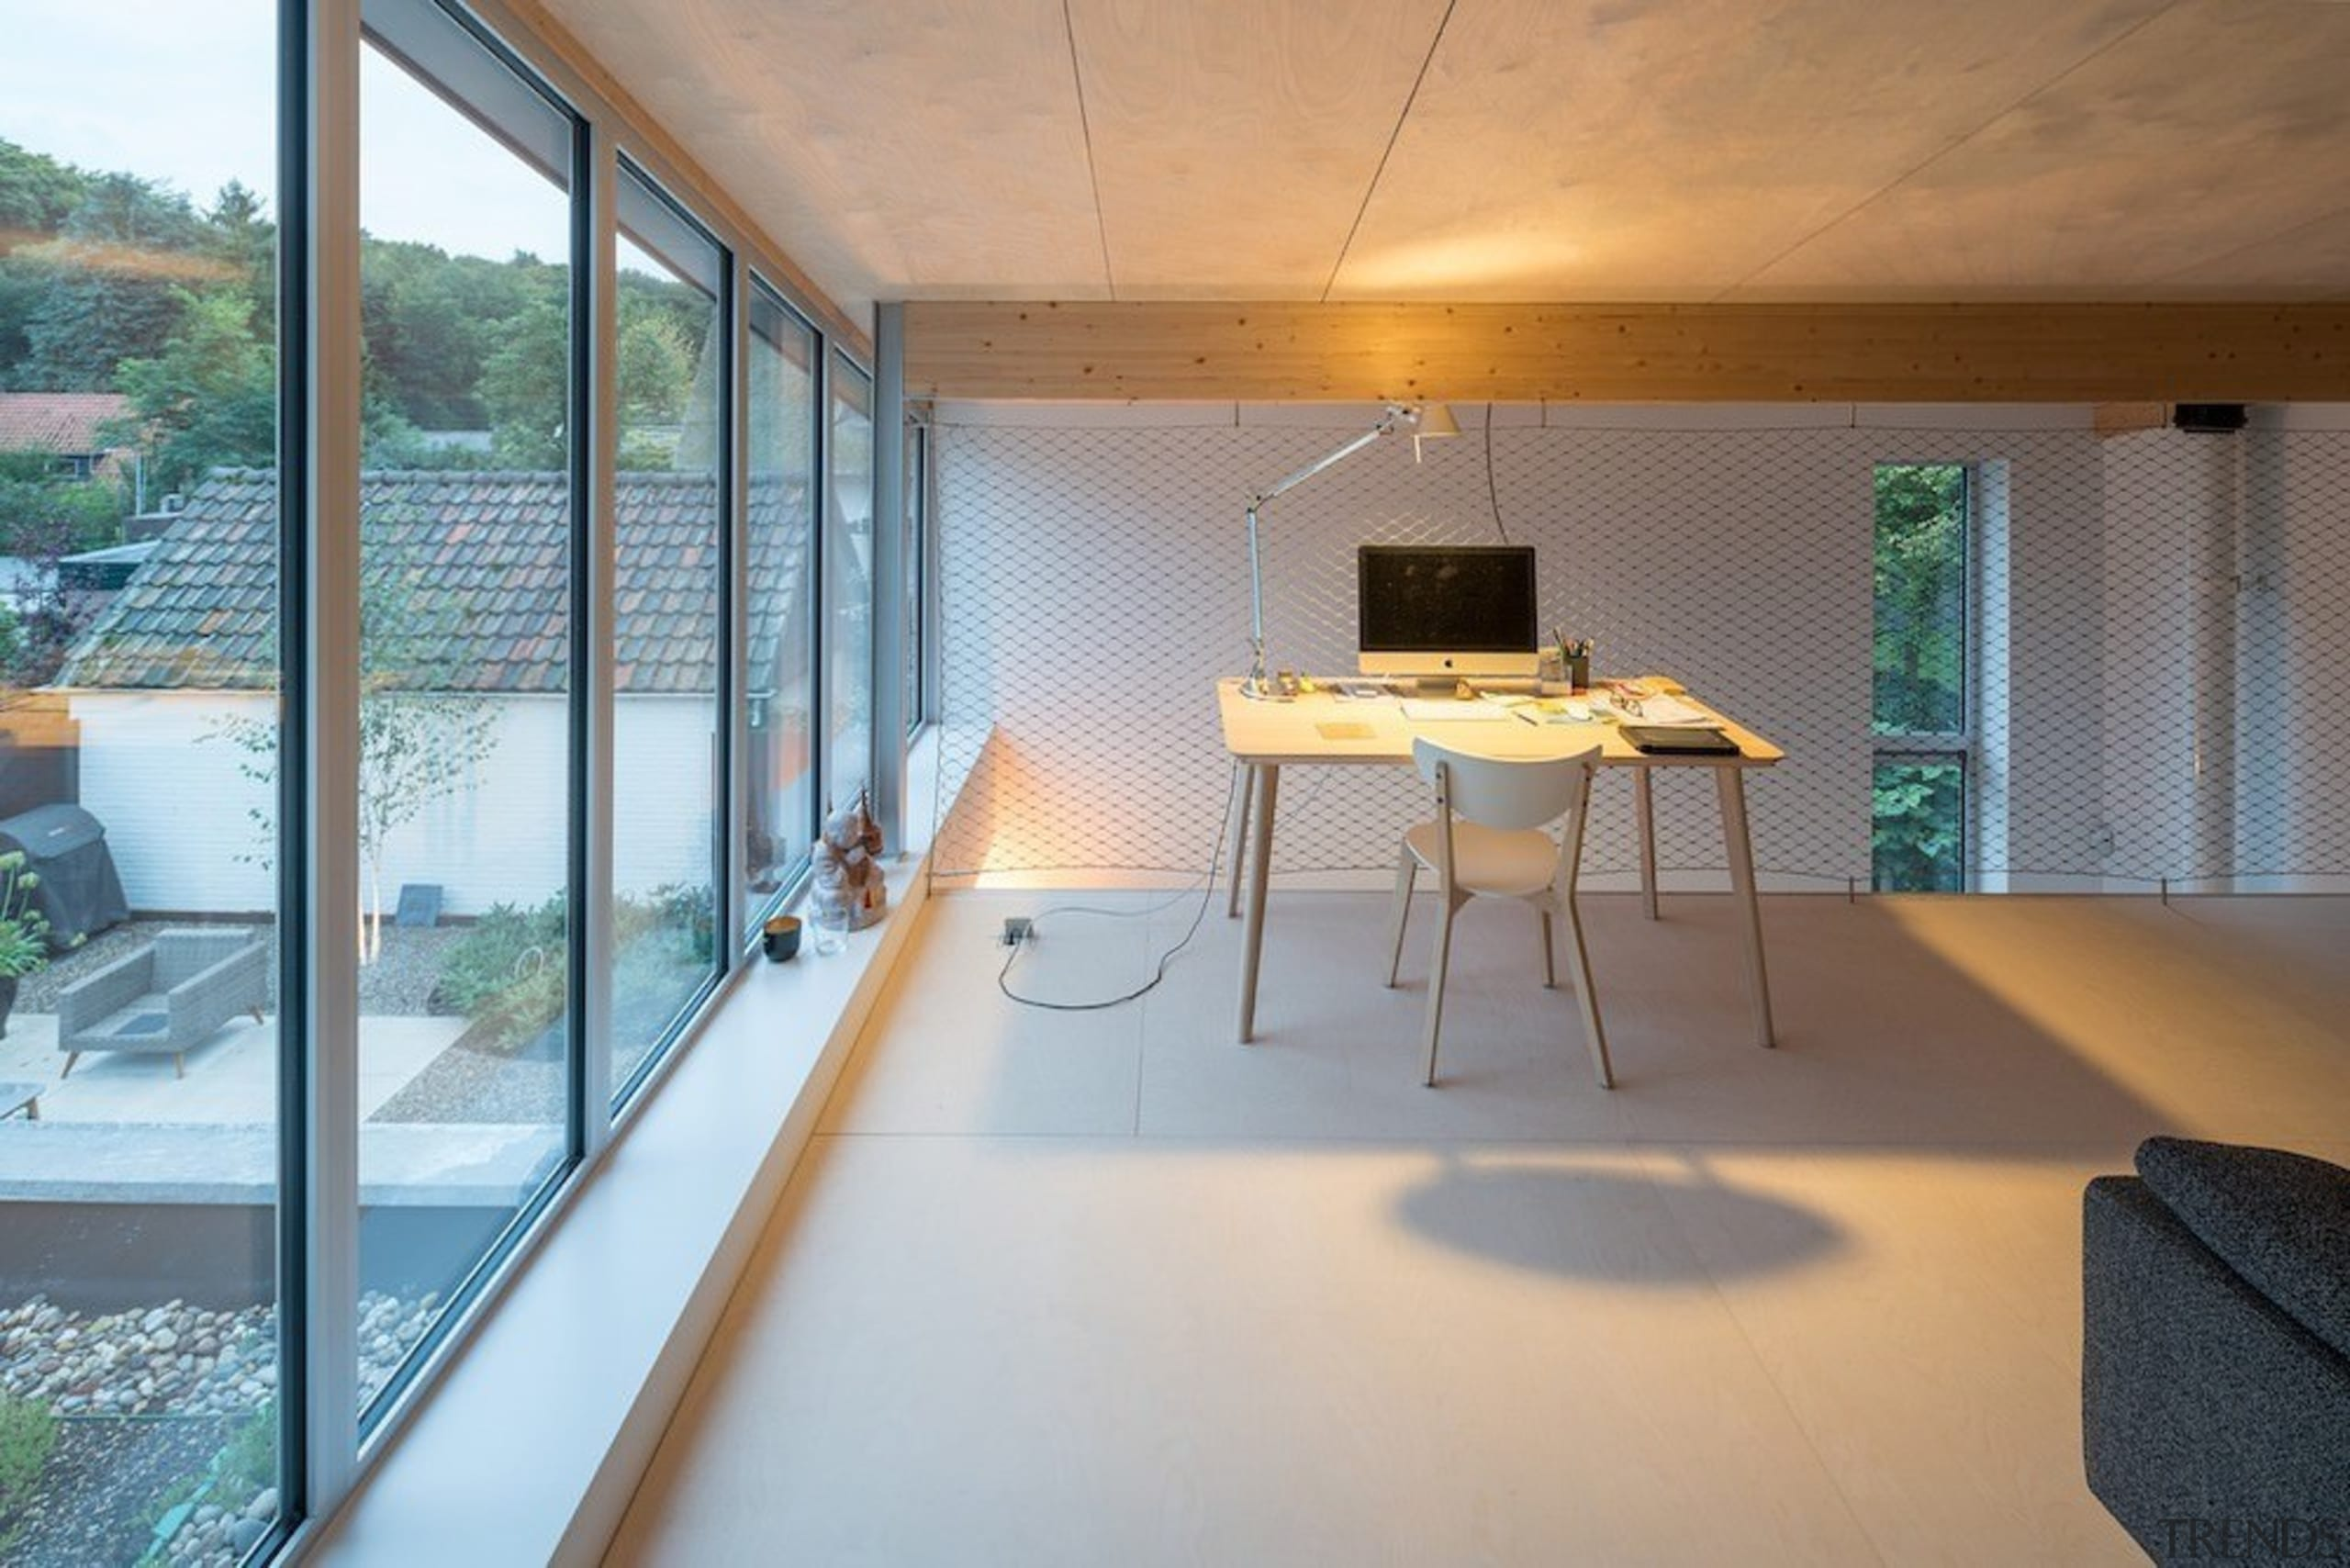 This is the perfect office – private, minimalist apartment, architecture, daylighting, estate, floor, house, interior design, property, real estate, window, gray